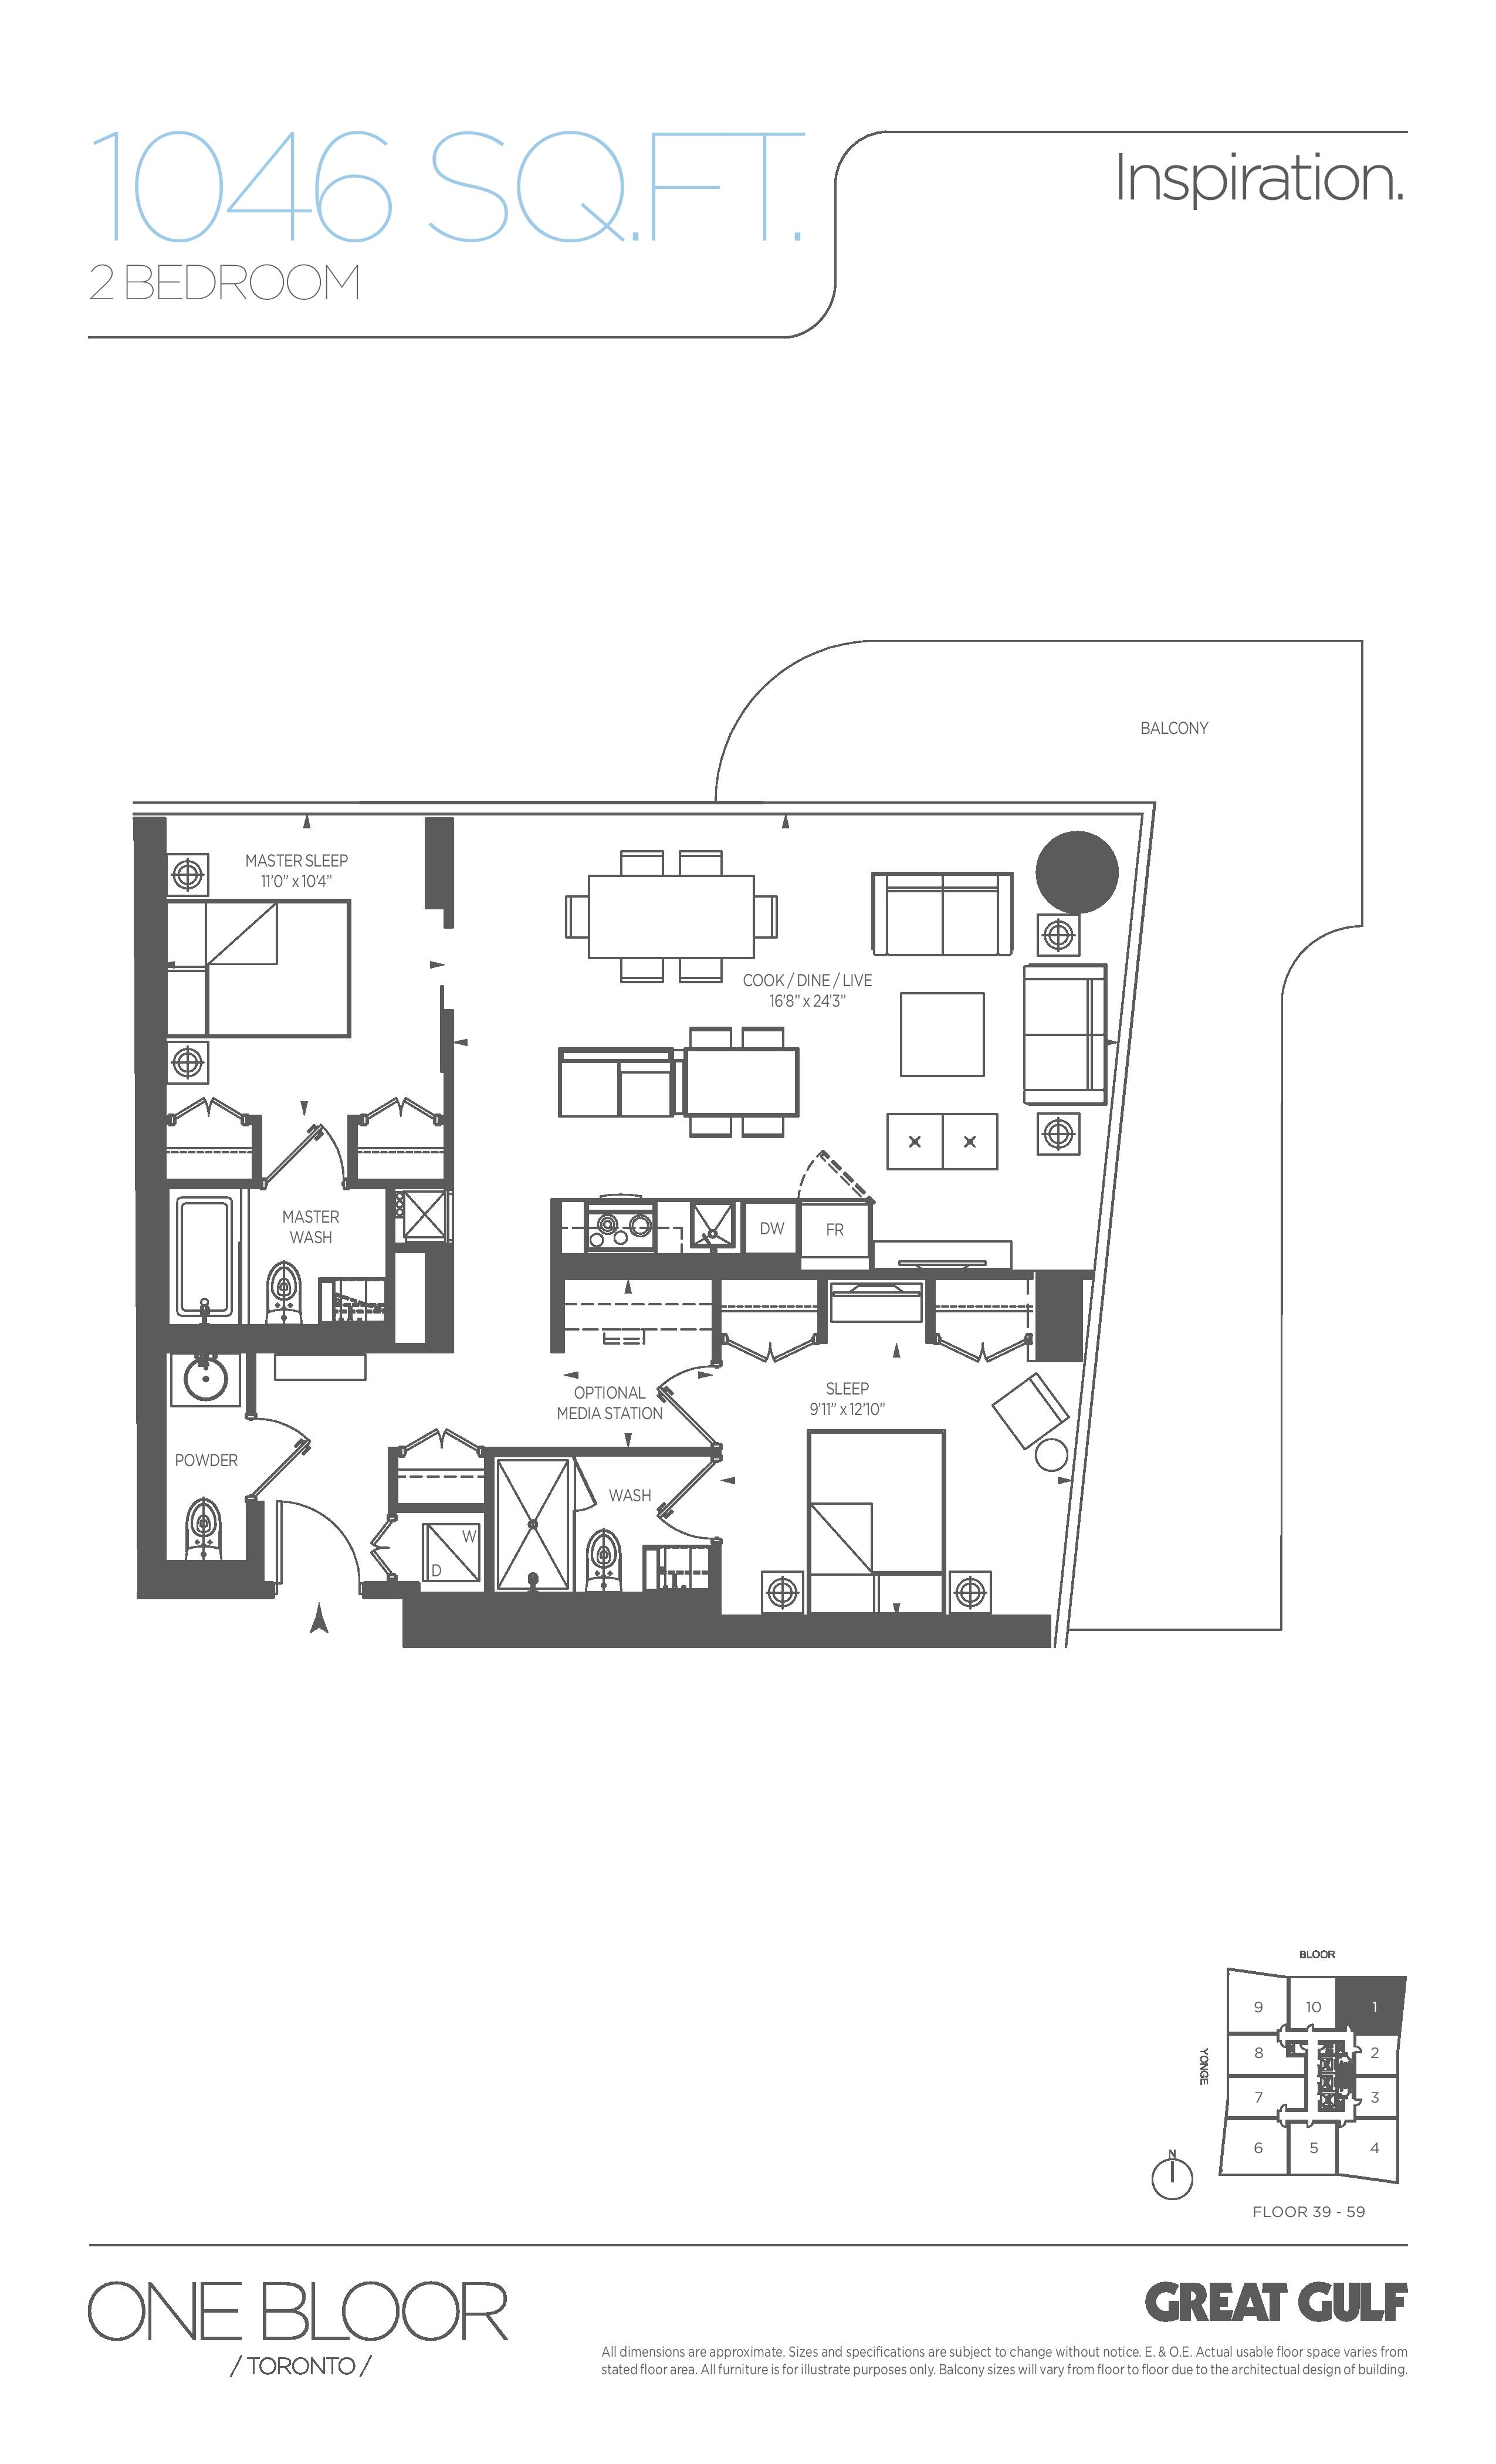 Inspiration Floor Plan at One Bloor Condos - 1046 sq.ft